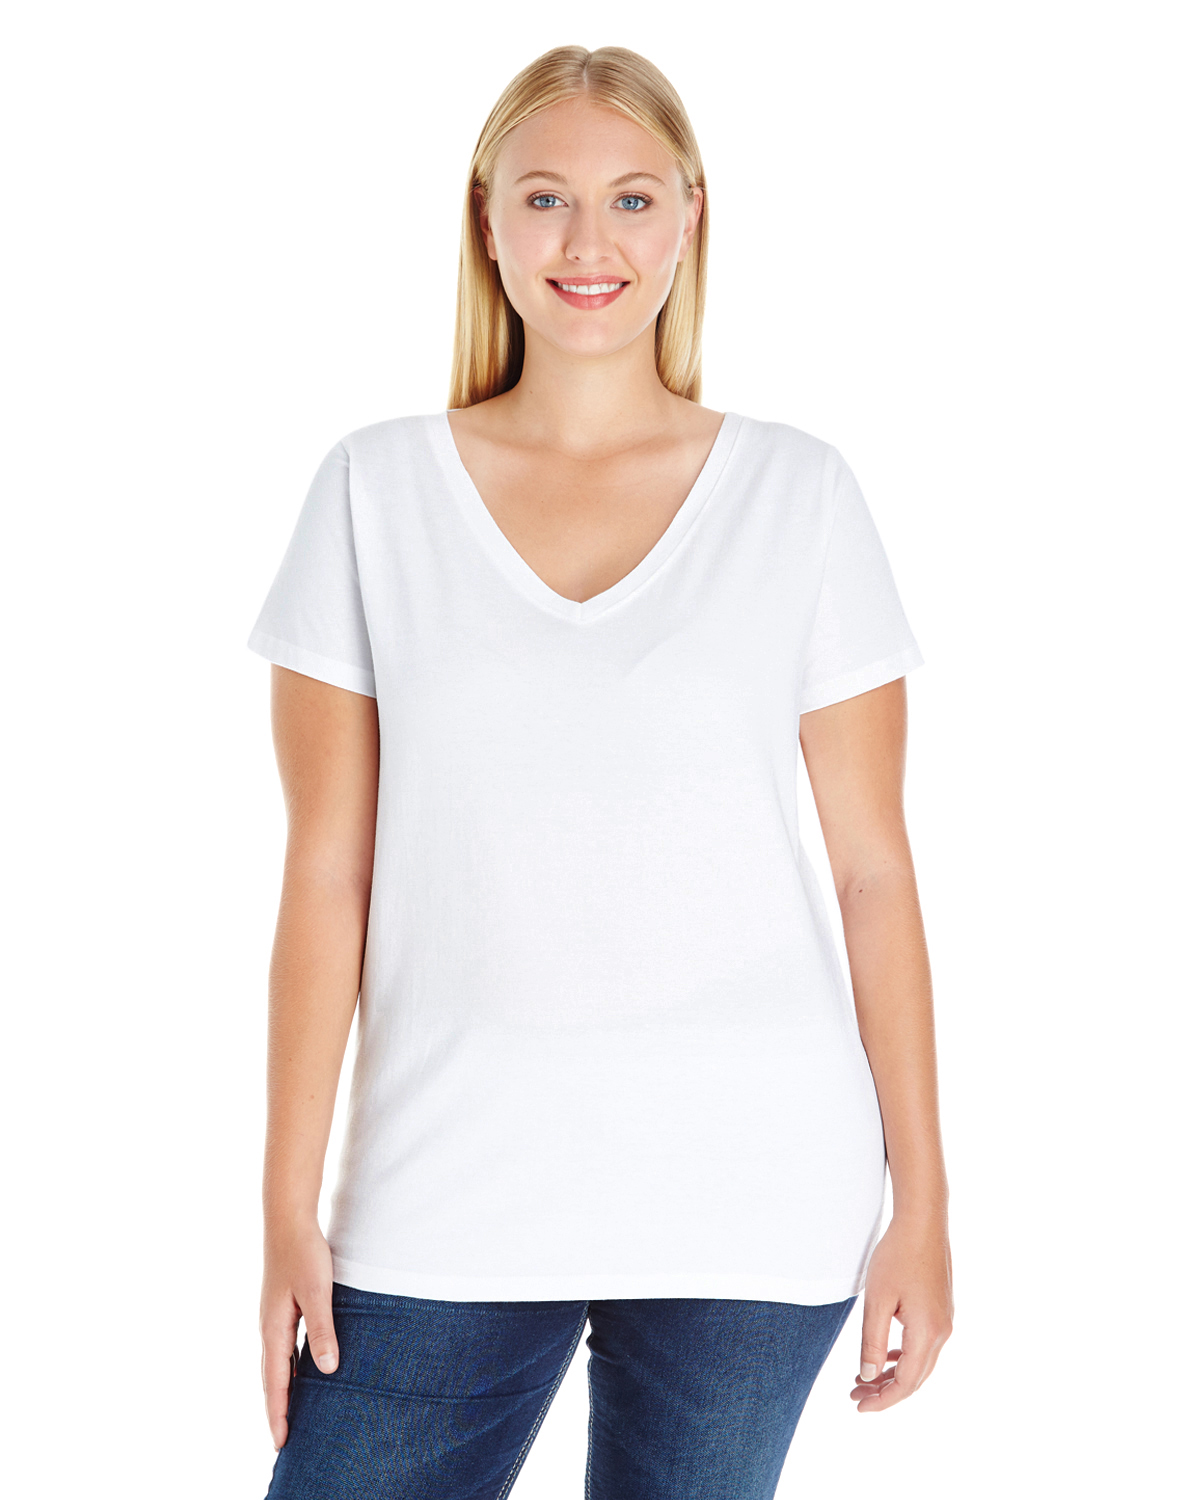 LAT 3807 Ladies Curvy V-Neck Premium Jersey T-Shirt